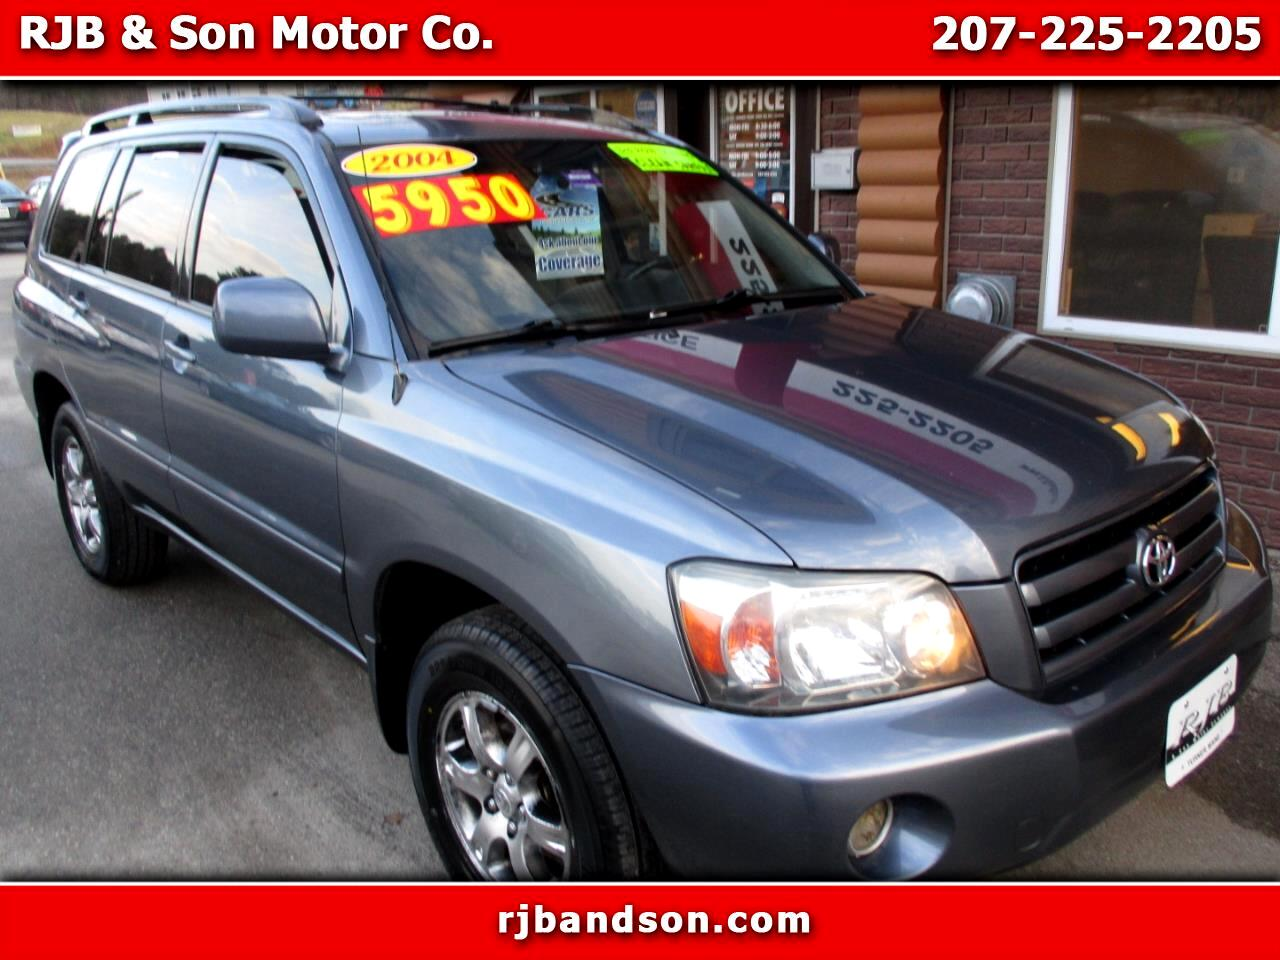 Toyota Highlander V6 4WD with Third Row Seat 2004